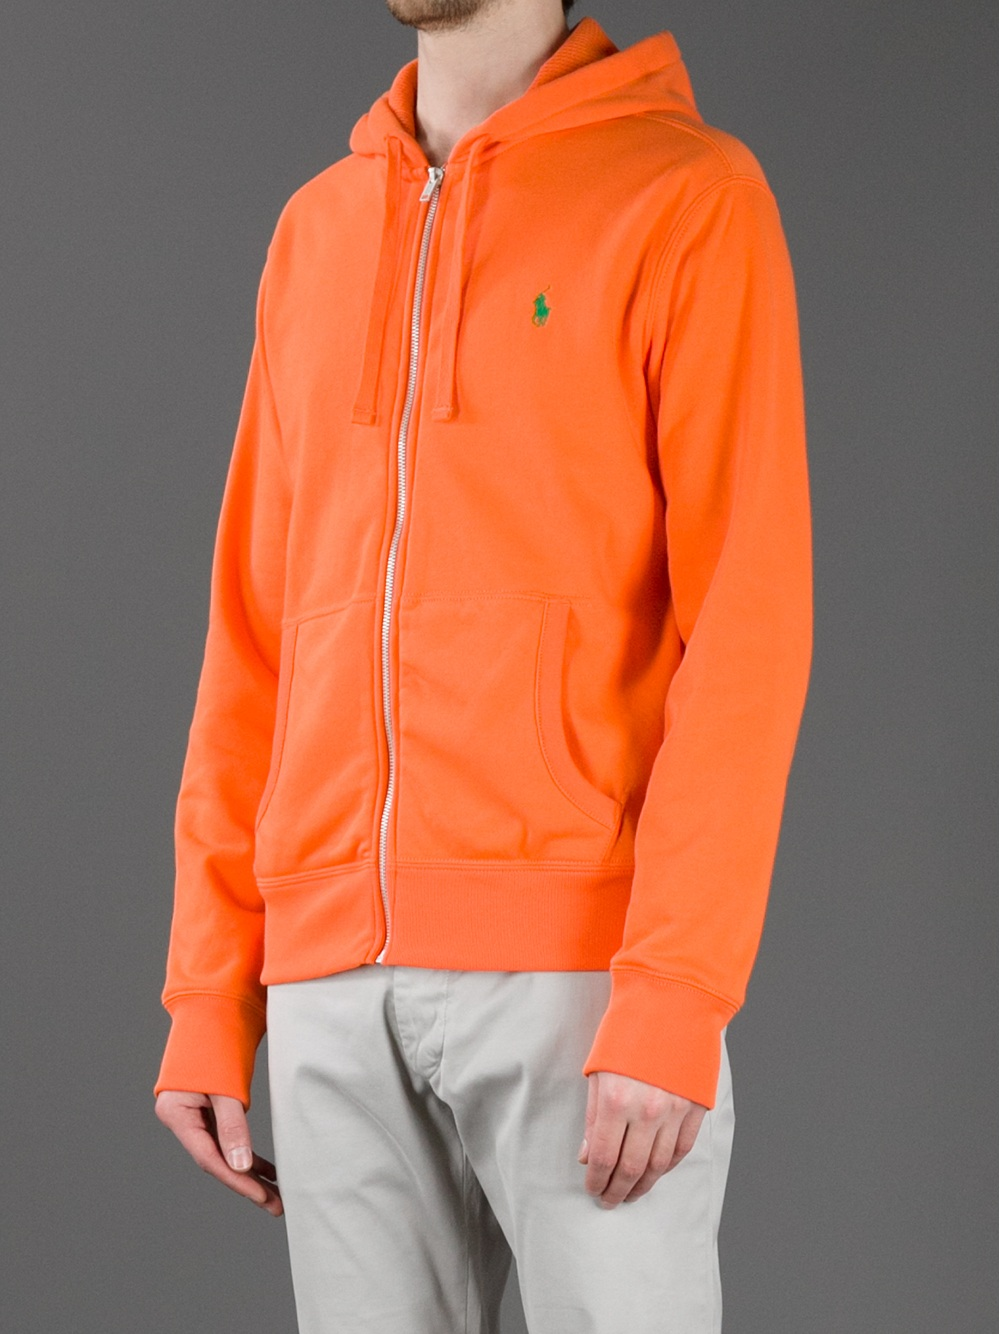 Ralph Orange 79b17 Purchase Hoodie Lauren Ce9be CrtdshQx